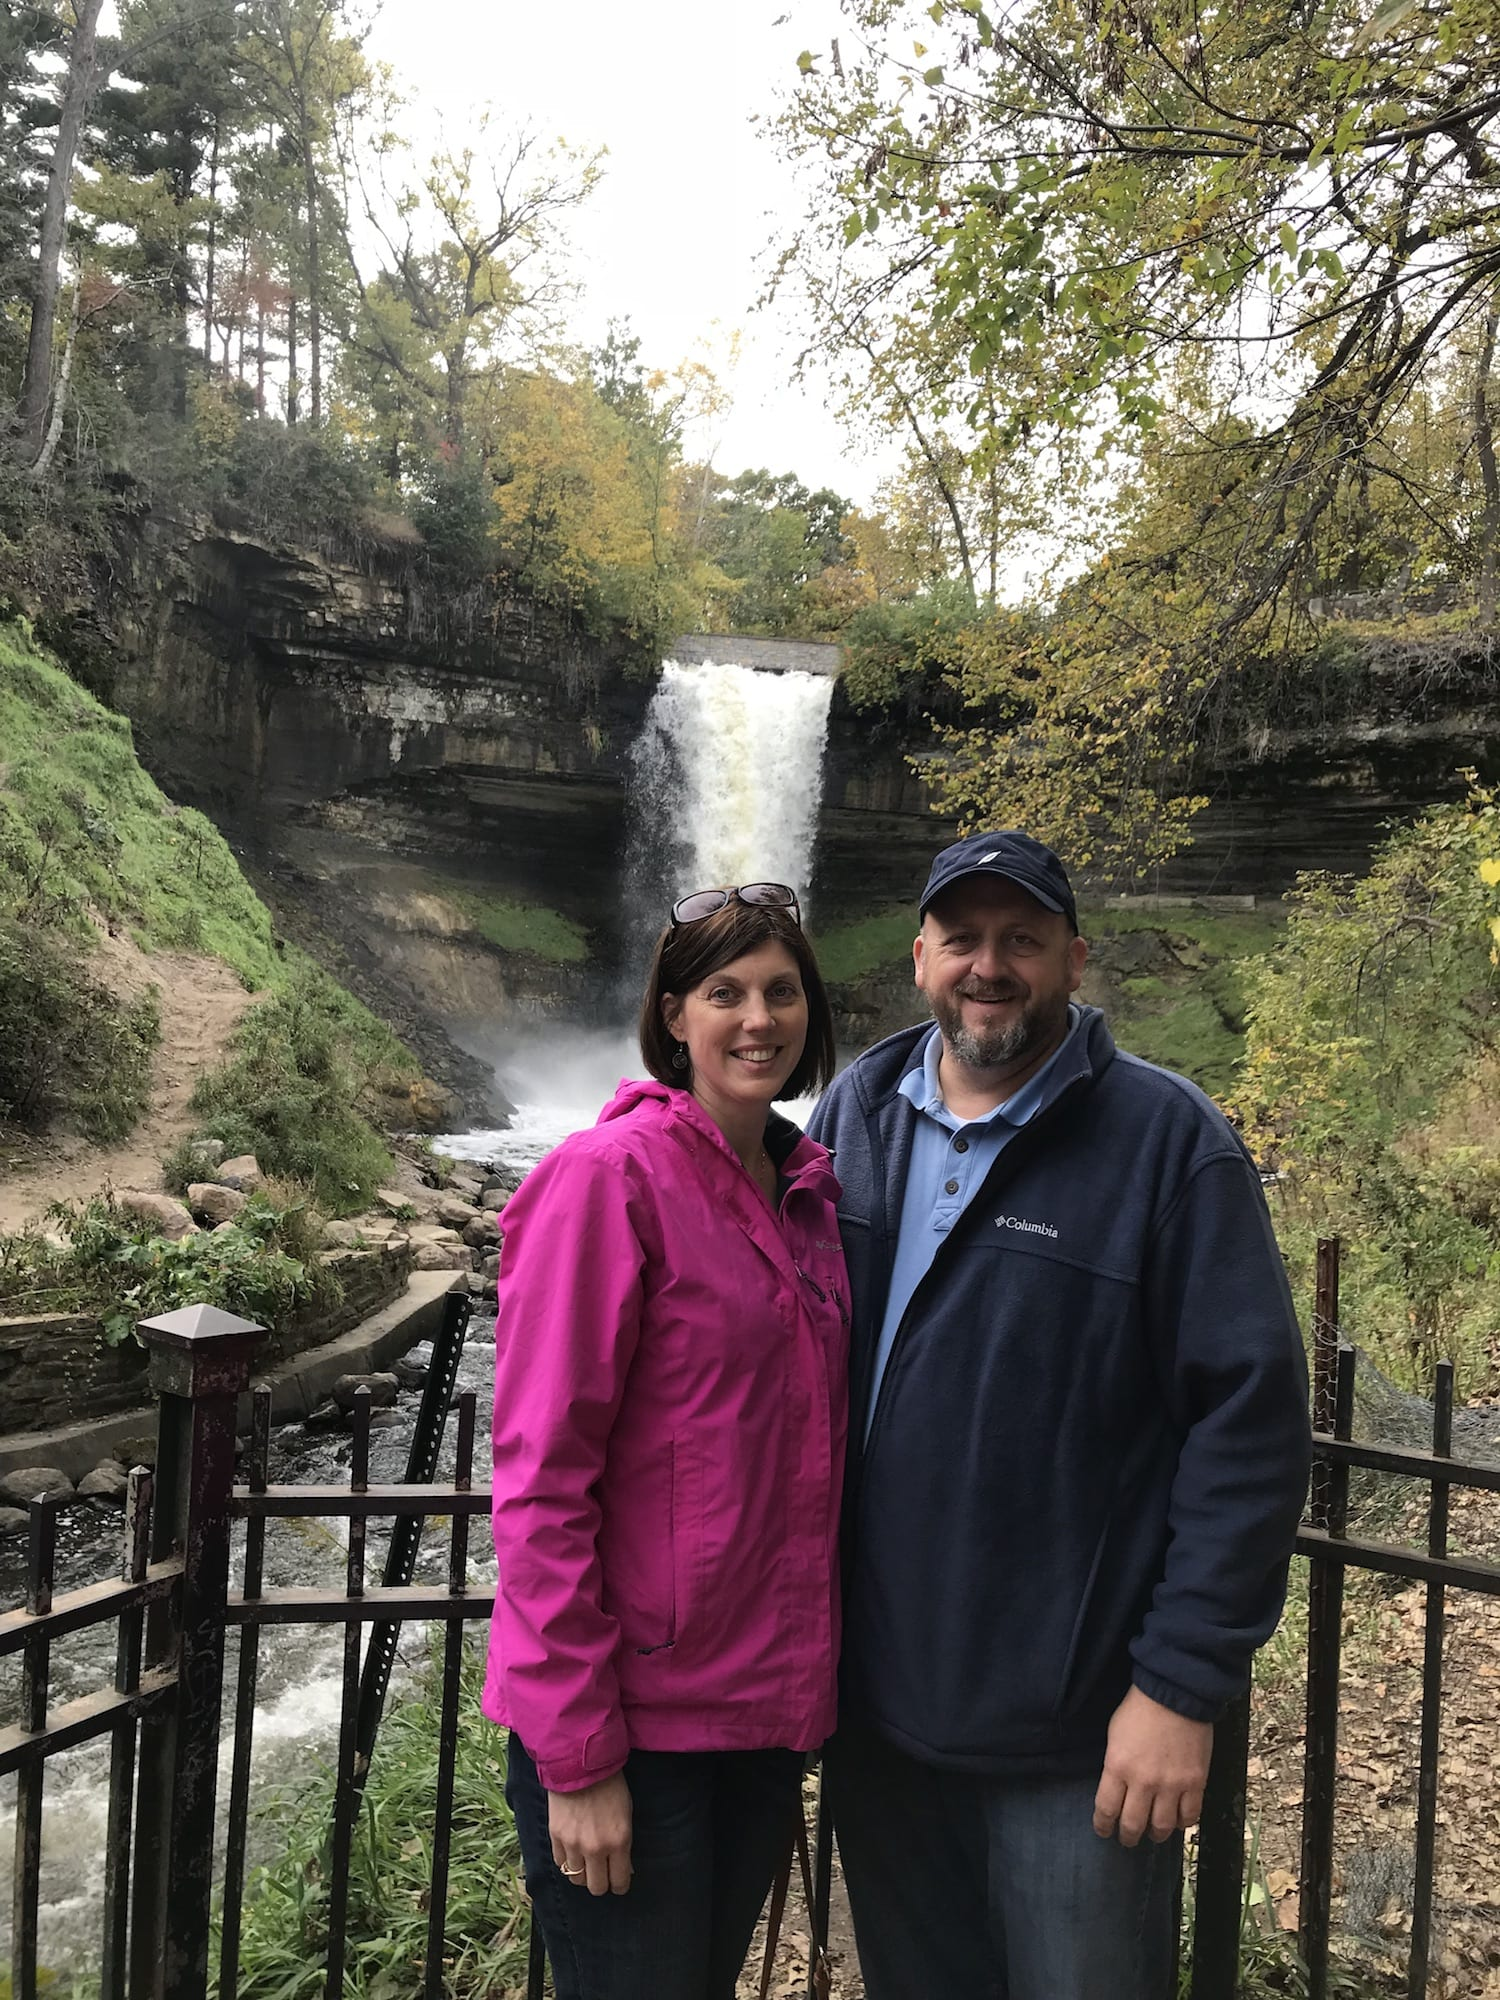 Family pictures at Minnehaha Falls in Minneapolis Minnesota